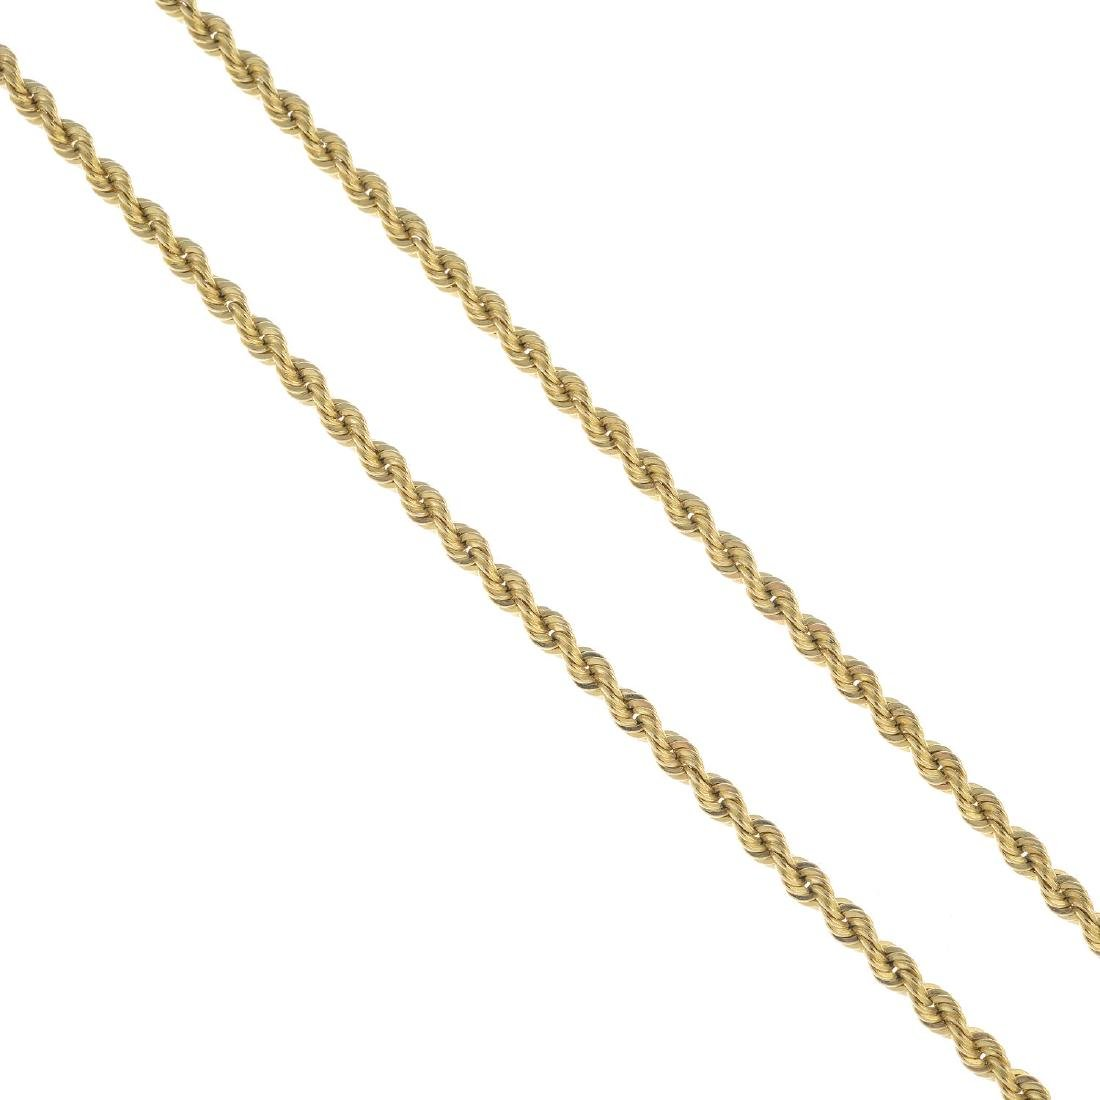 TIFFANY & CO. - a necklace. Designed as an interwoven,